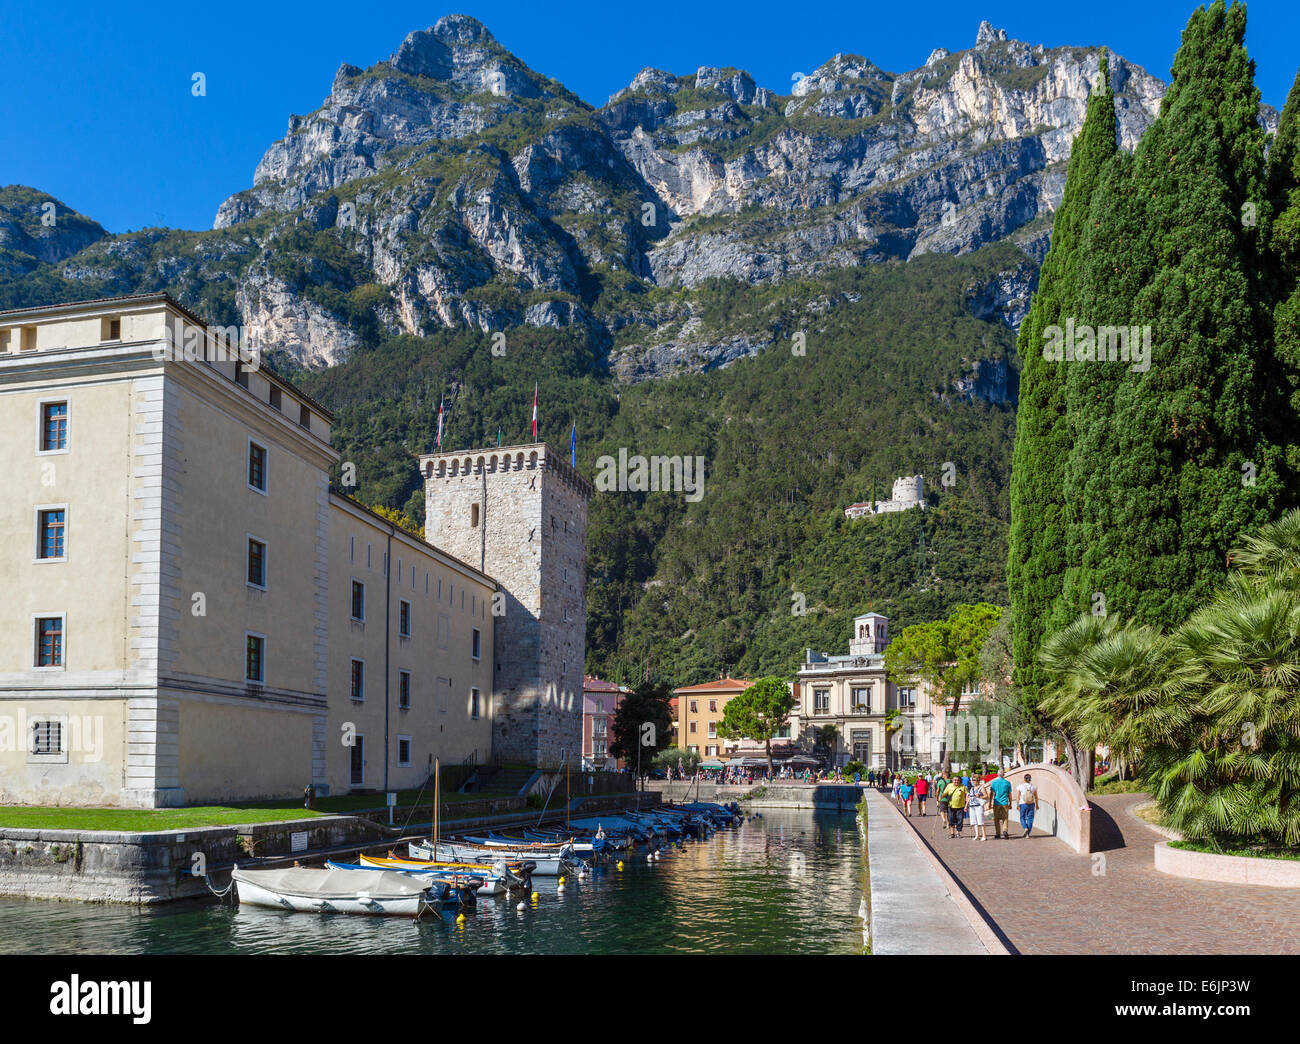 The Rocca (Castle) now the Museo Civico, Riva del Garda, Lake Garda, Trentino-Alto Adige, Italy - Stock Image